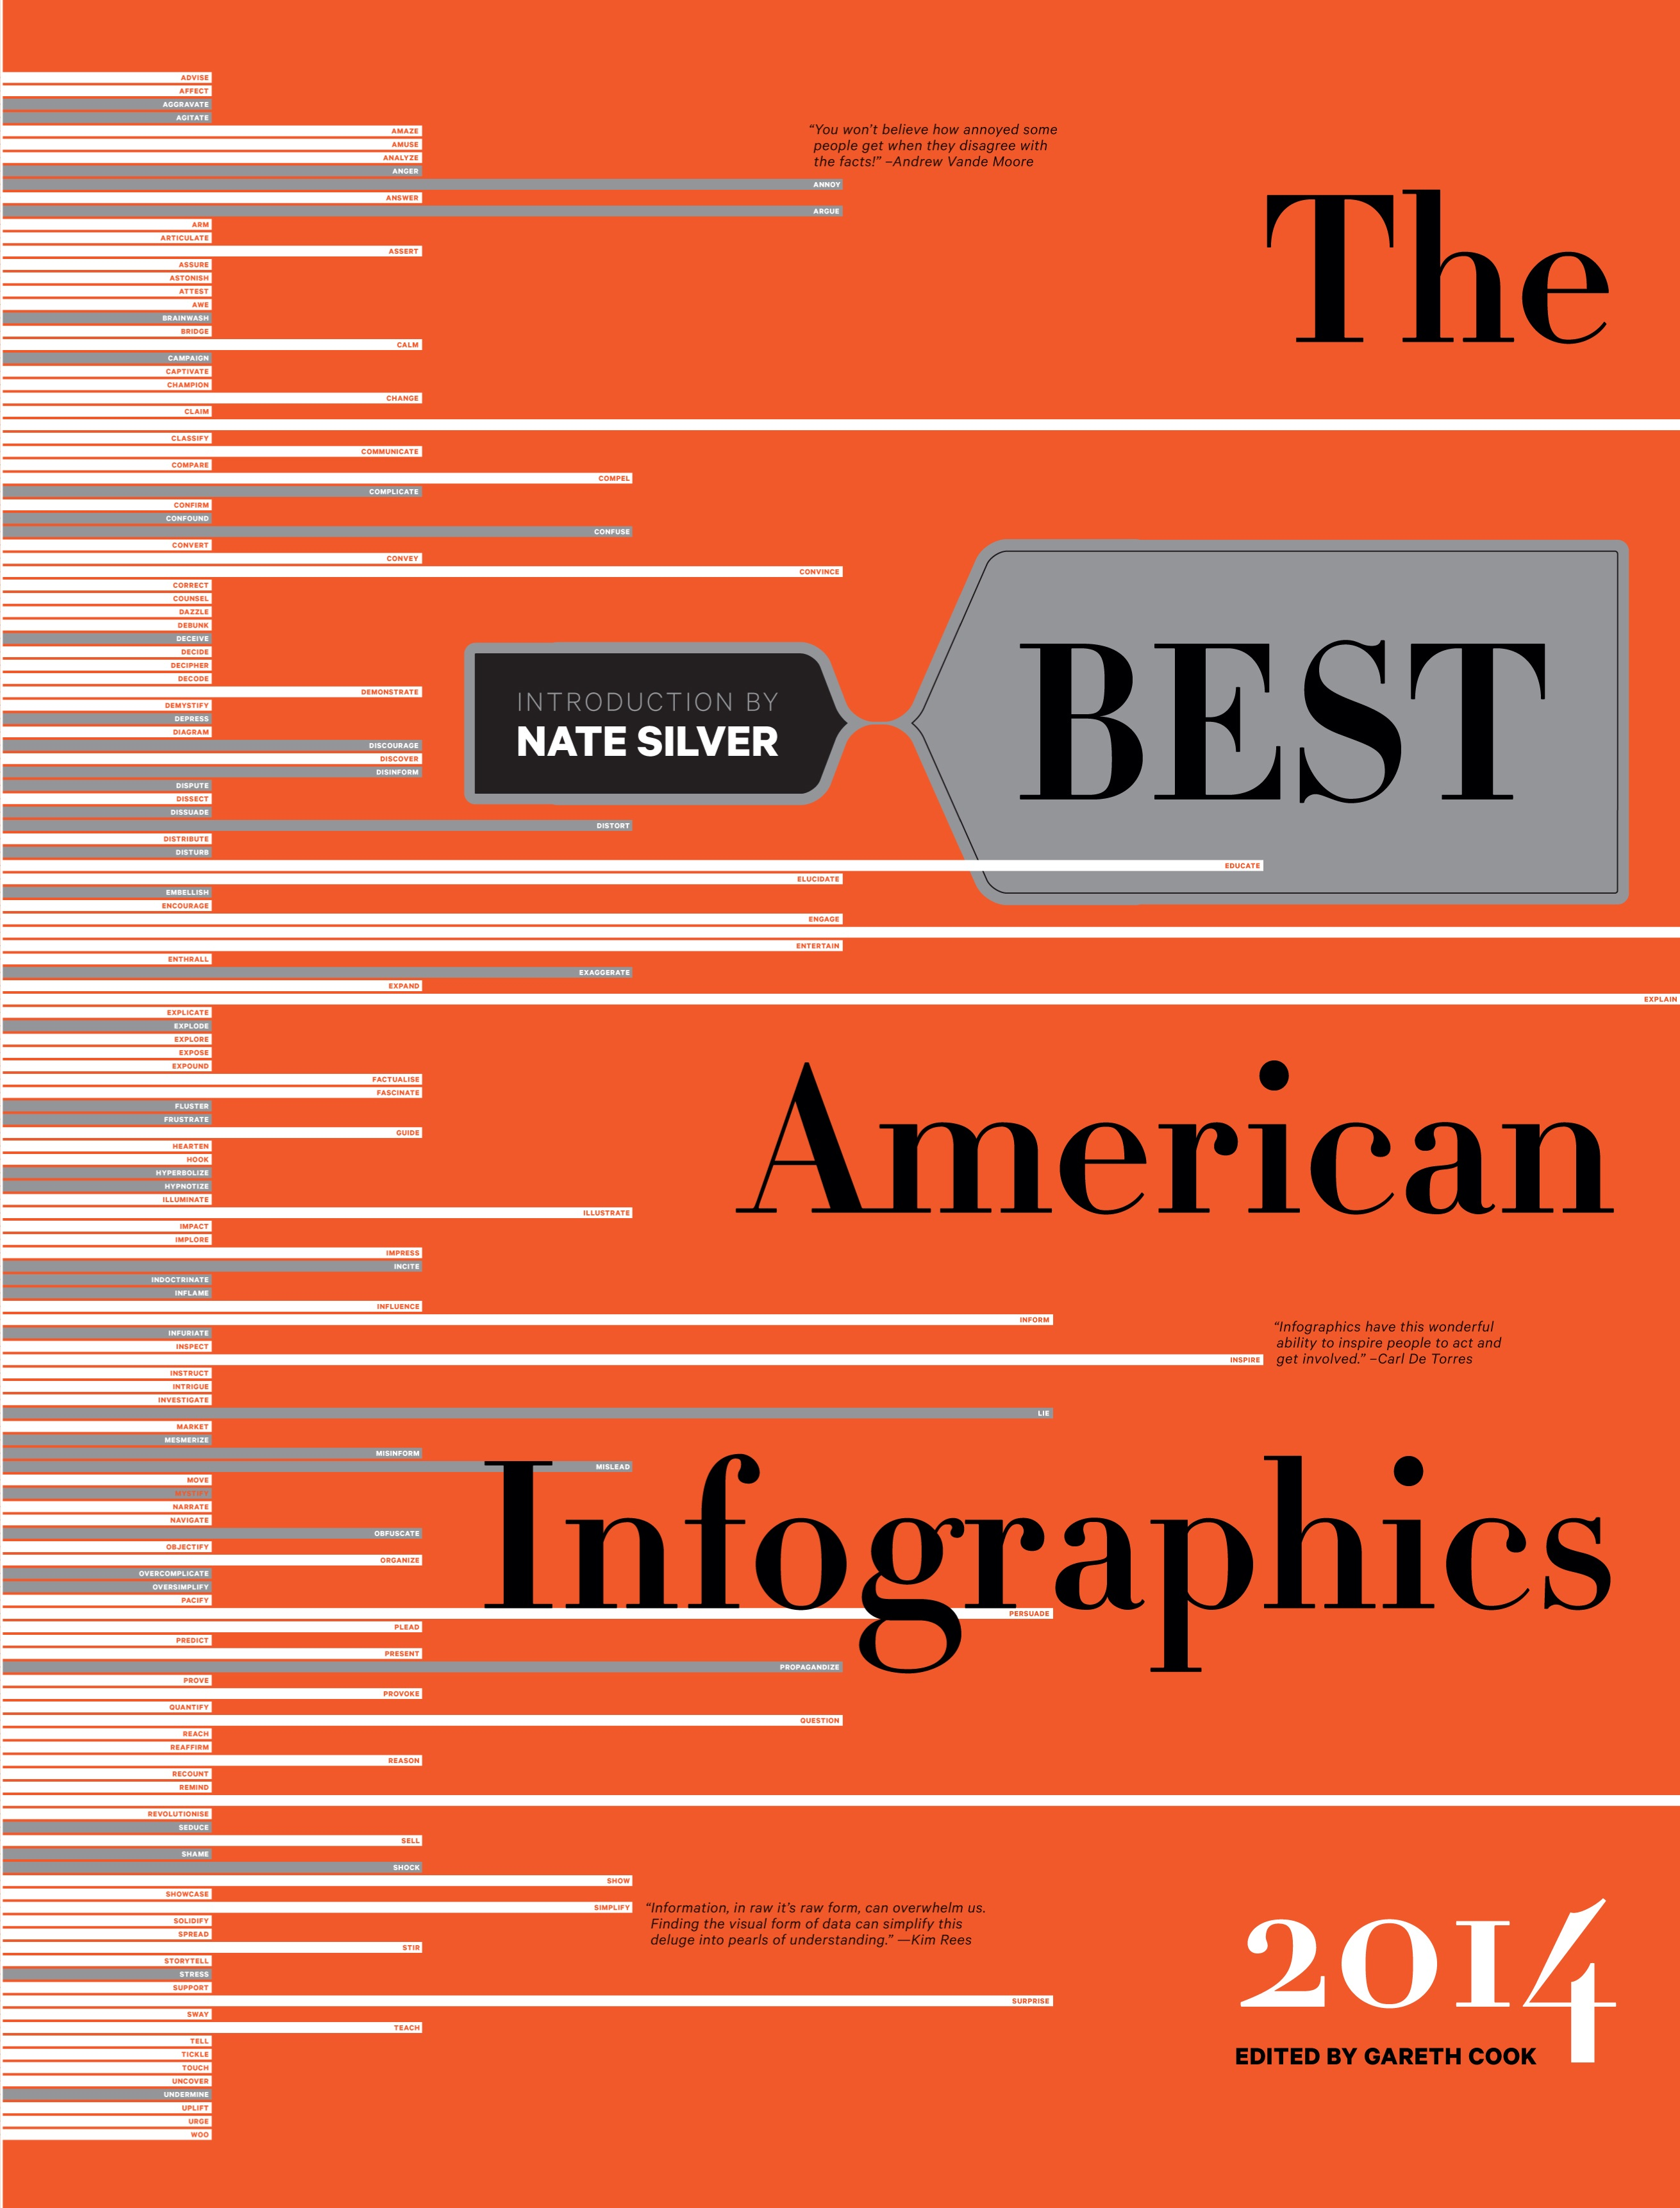 The Best Infographics of the Year: Nate Silver on the 3 Keys to Great Information Design and the Line Between Editing and Censorship